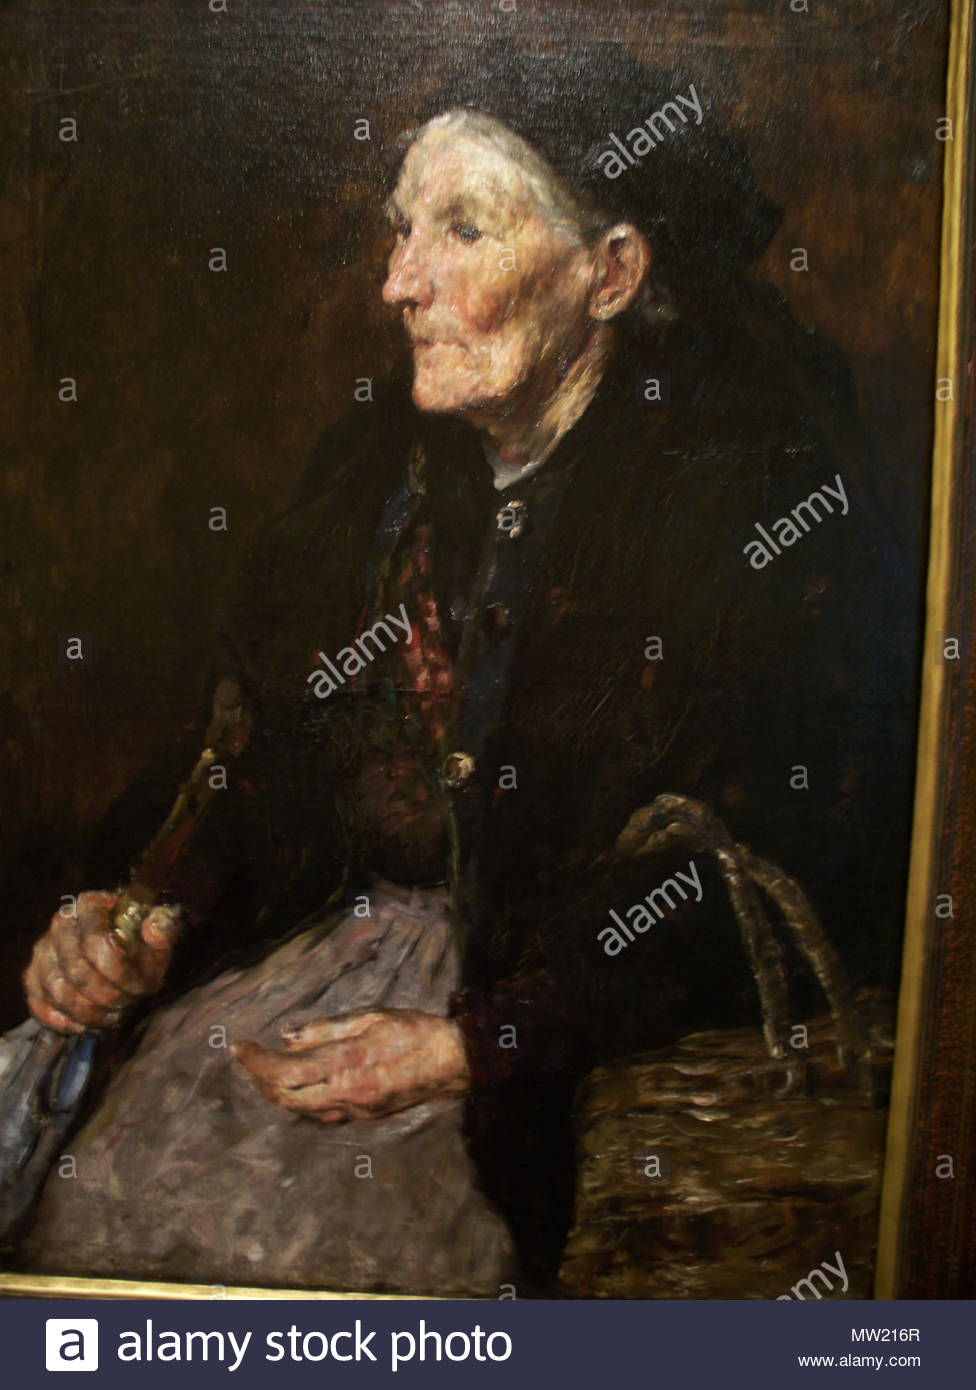 . Old Market Woman .  Old Market Woman http://www.imamuseum.org/explore/artwork/2596 Forsyth focuses on the timeworn quality of the woman's hands and facial features. This canvas exemplifies the Munich Schools' dark tonality and bravura brushwork. In 1882 William Forsyth traveled to Munich to study at the Royal Academy Wikipedia Loves Art at the Indianapolis Museum of Art This photo of item # 20.194 at the Indianapolis Museum of Art was contributed under the team name 'Opal Art Seekers 4' as part of the Wikipedia Loves Art project in February 2009. Indianapolis Museum of Art The original photo - Stock Image